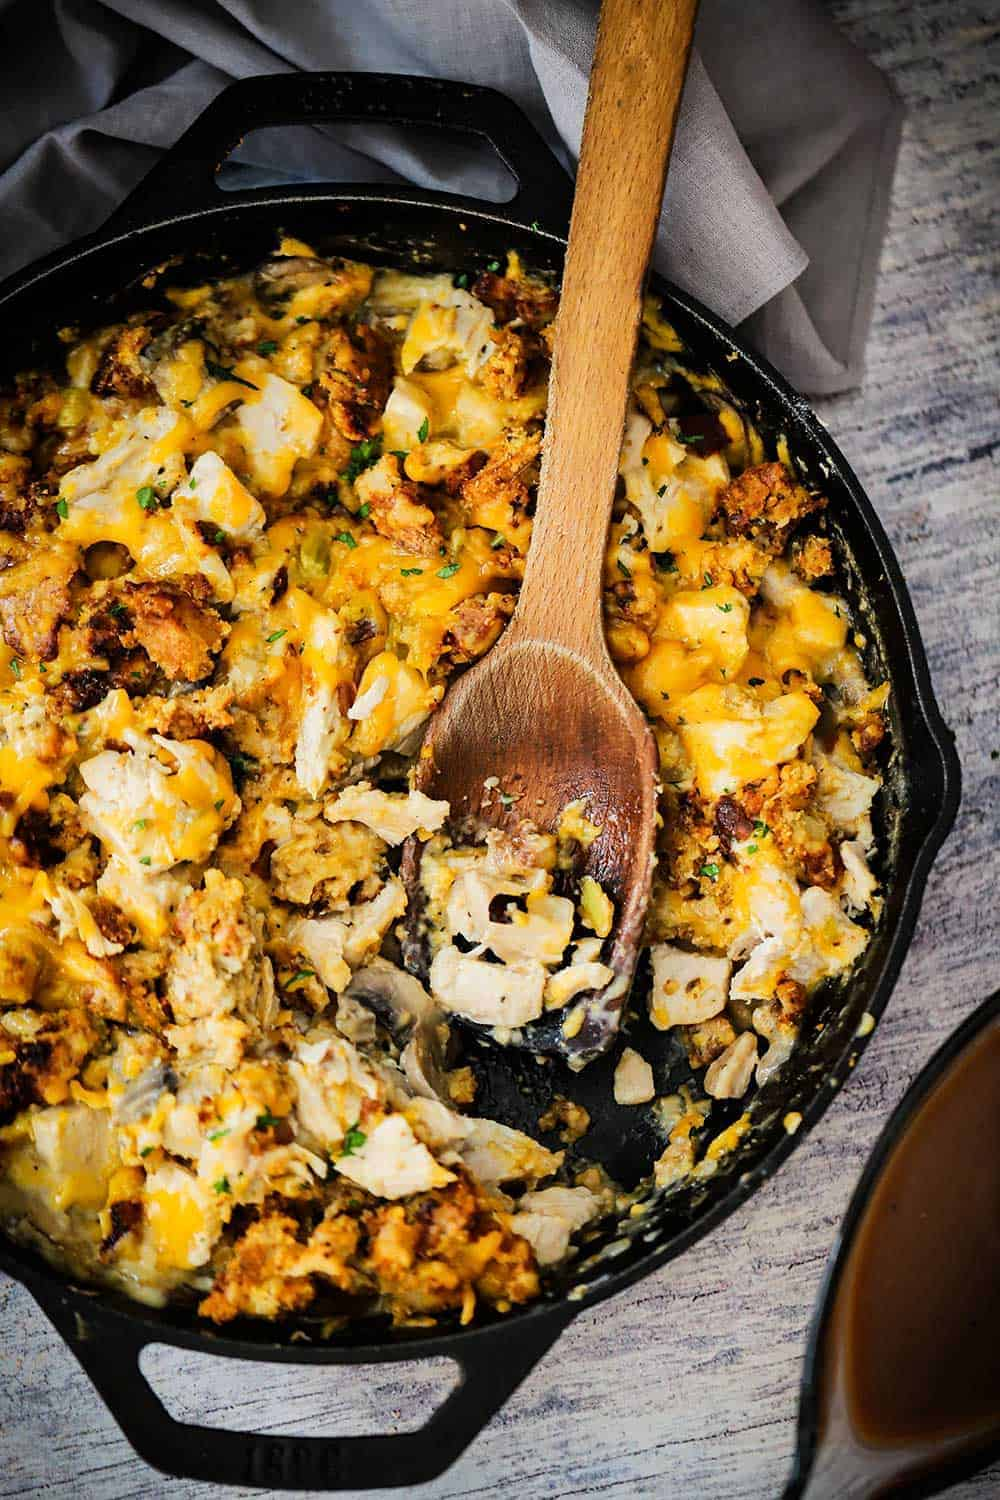 A large black cast-iron skillet filled with turkey and stuffing dressing with some of the food scooped out.